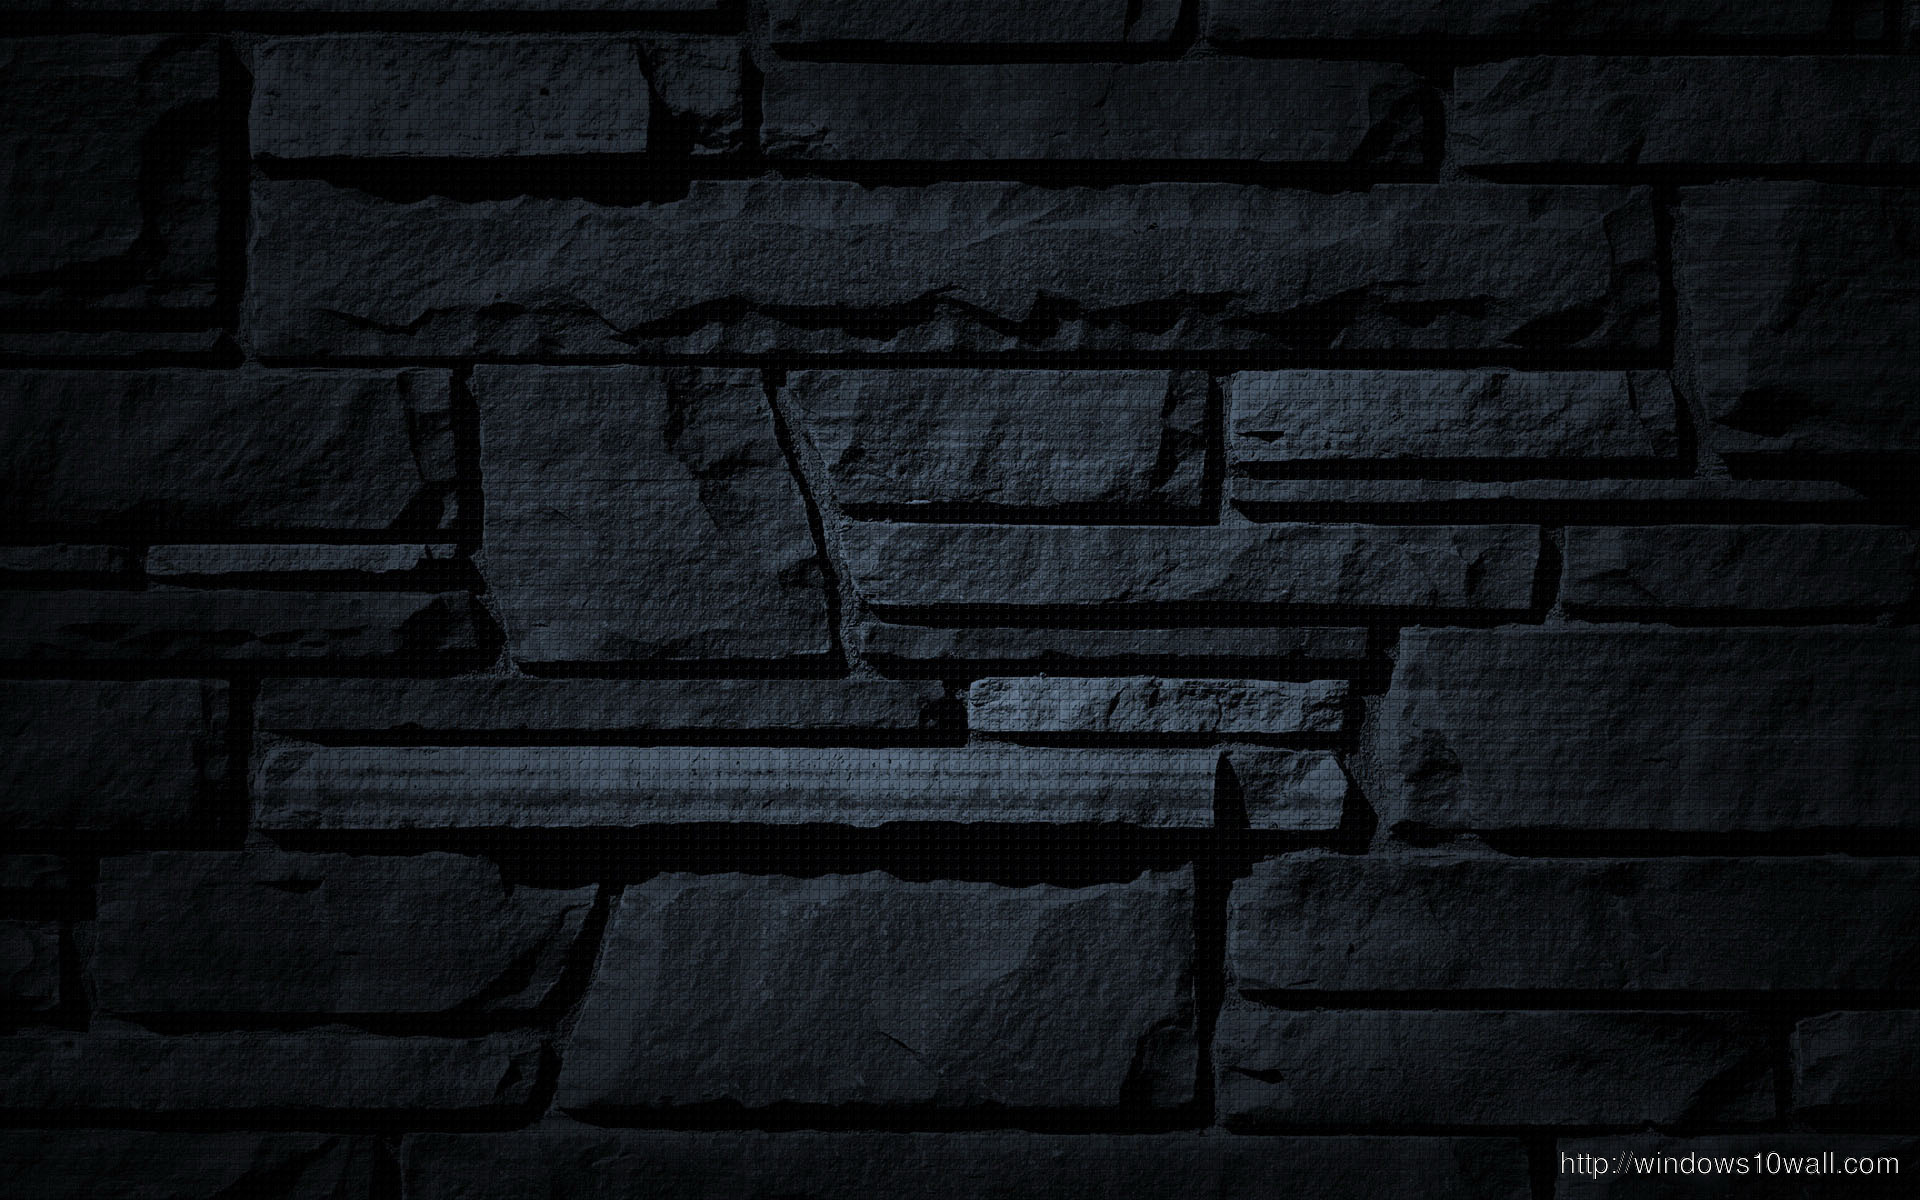 Black Stone Wall HD Wallpaper Windows 10 Wallpapers